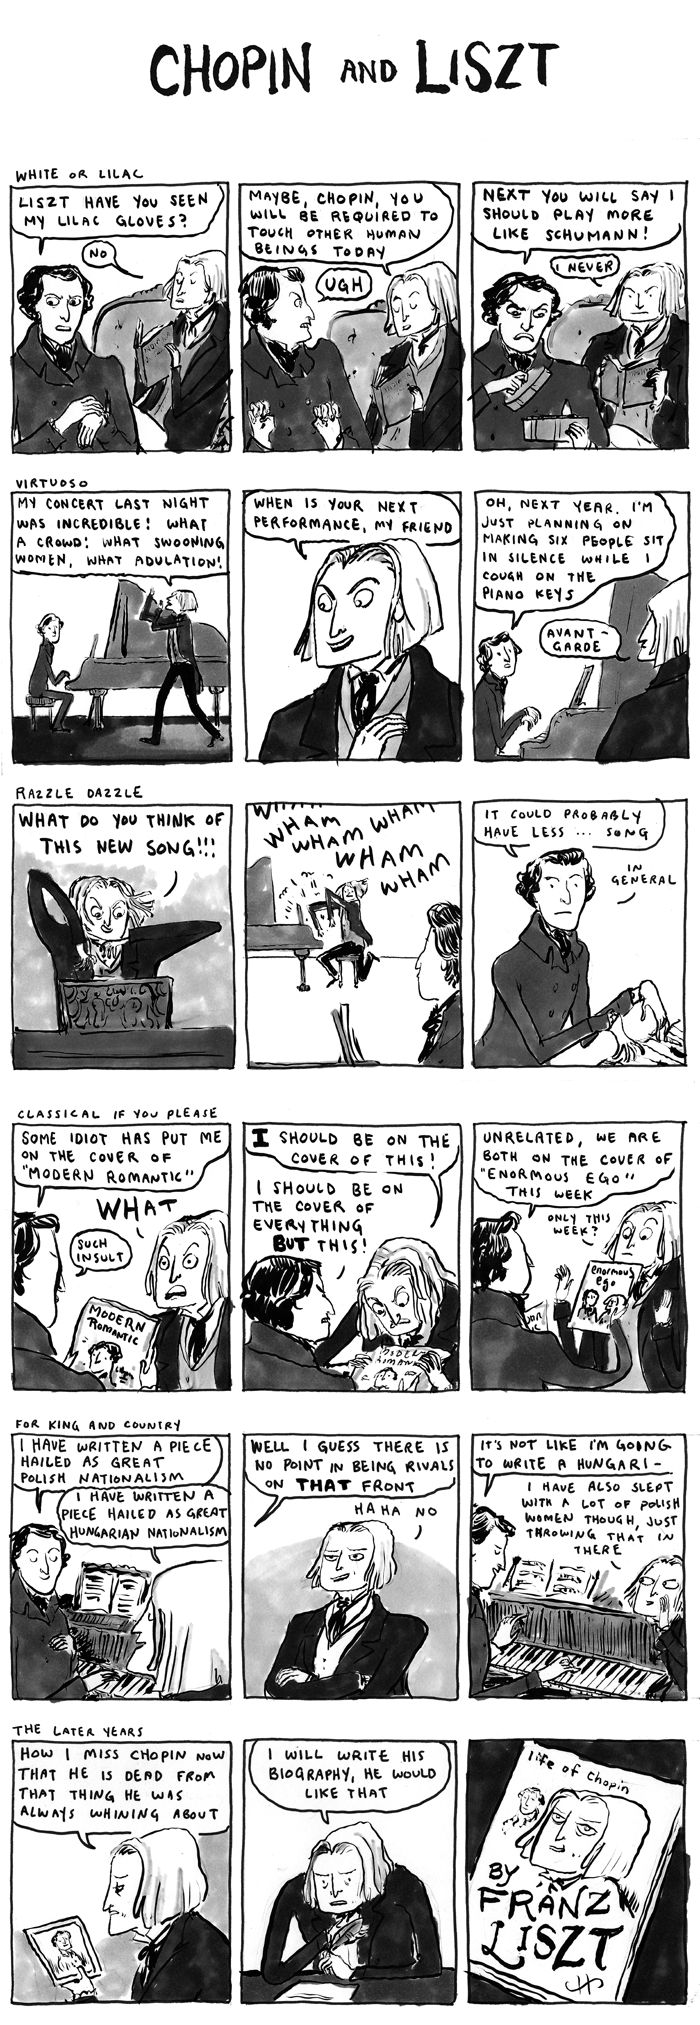 """Procrastinating by continuously clicking """"random"""" on Kate Beaton's site."""